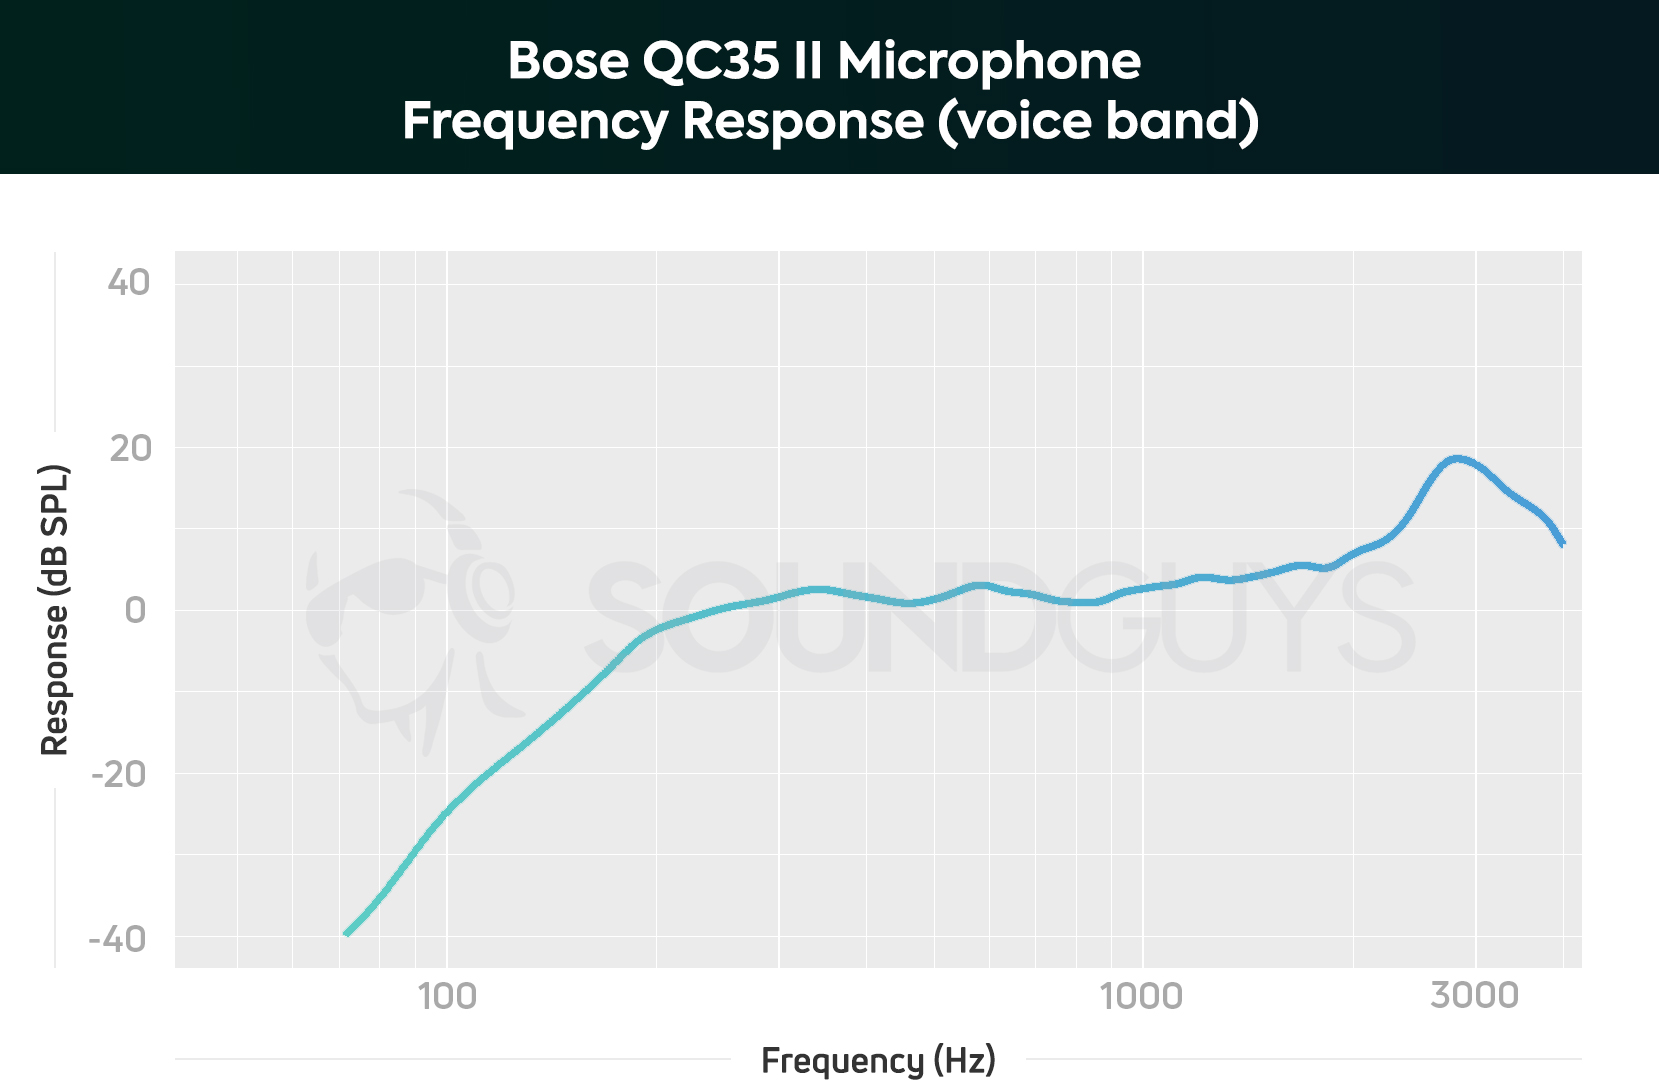 hight resolution of a chart showing the microphone performance of the bose qc35 ii in the voice band